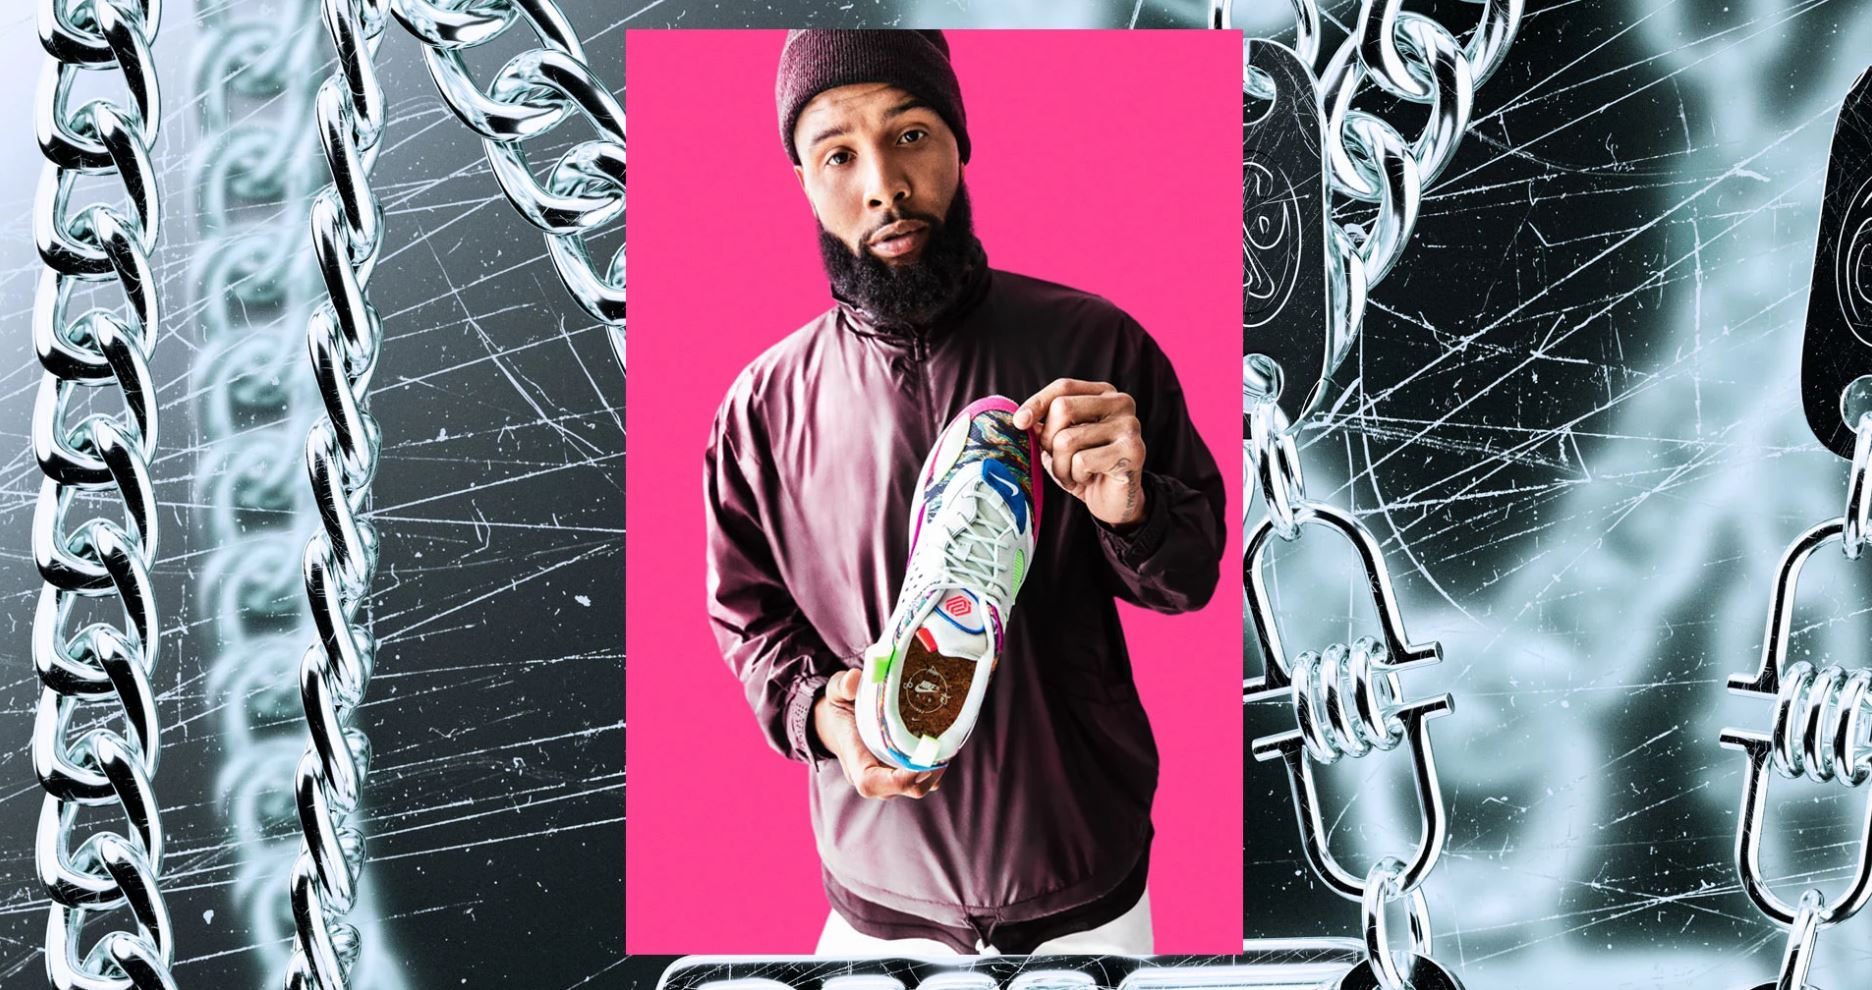 OBJ x Nike Air Max 720 - Young King of the Drip